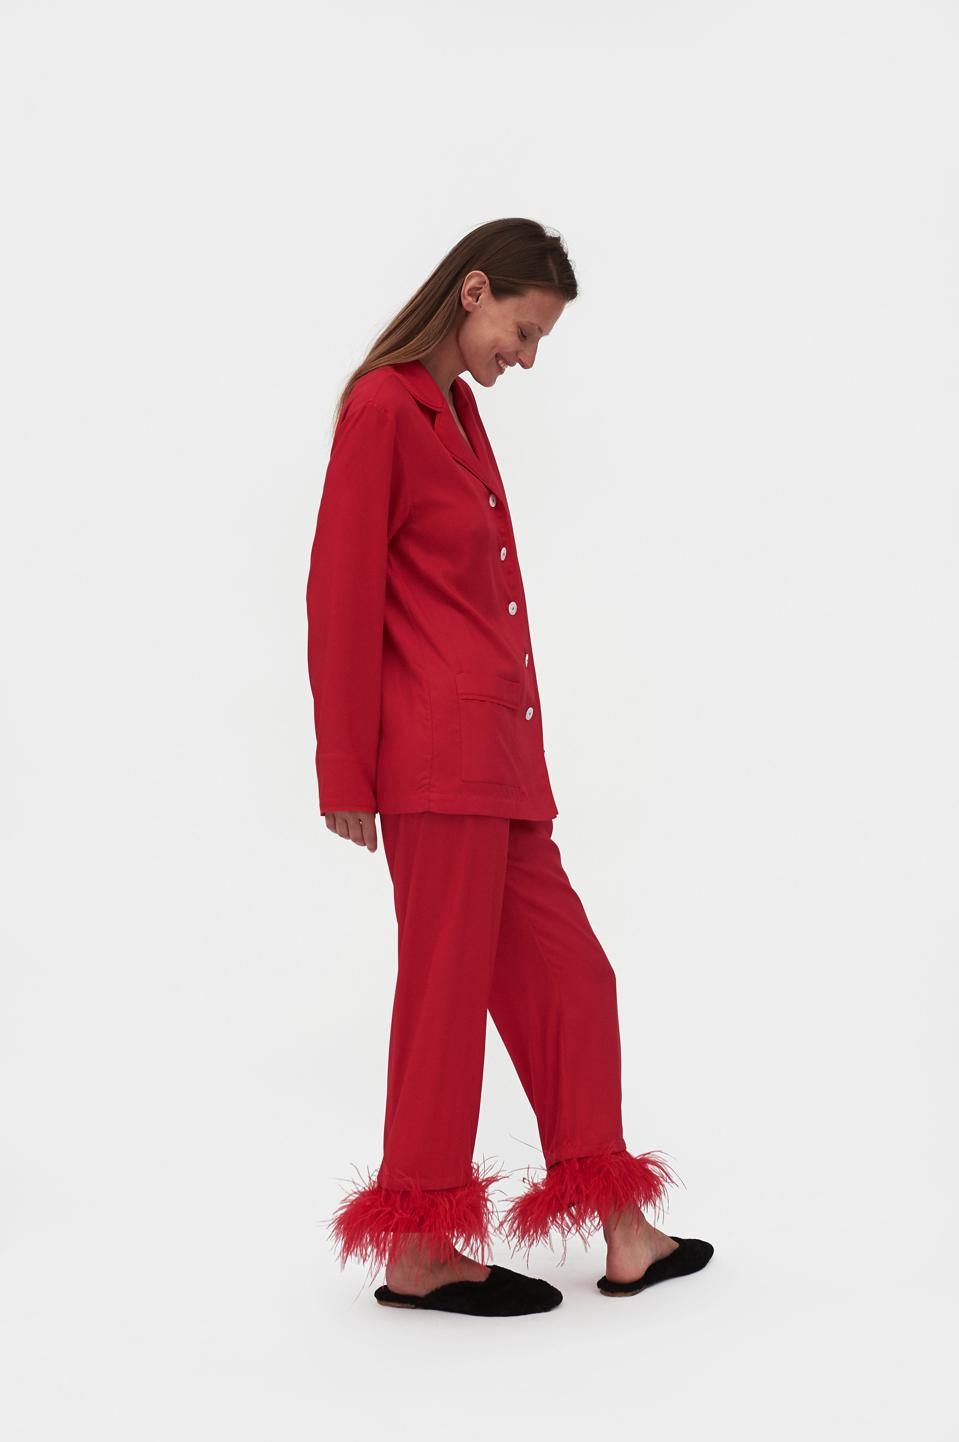 Sleeper's Iconic Party Pajama set with detachable ostrich feathers.